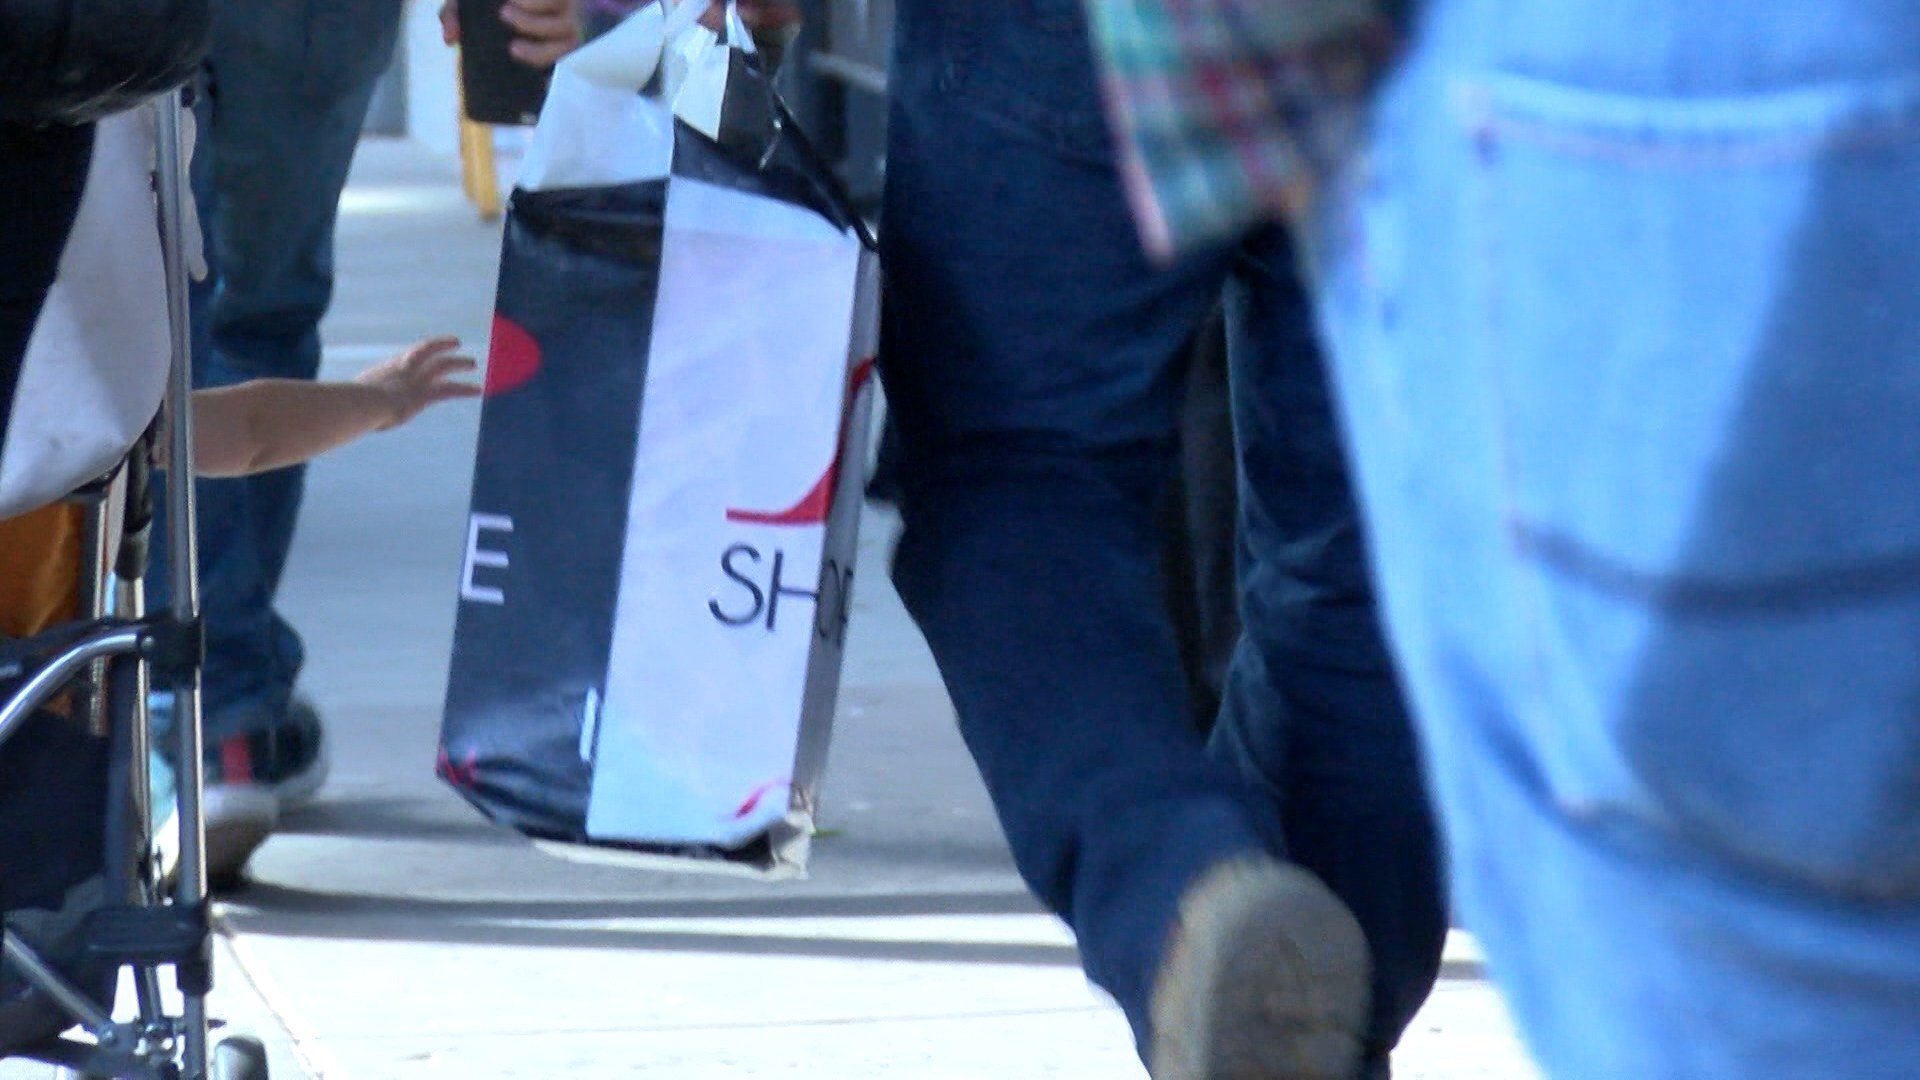 Last-minute holiday shoppers pack local mall for 'Super Saturday'